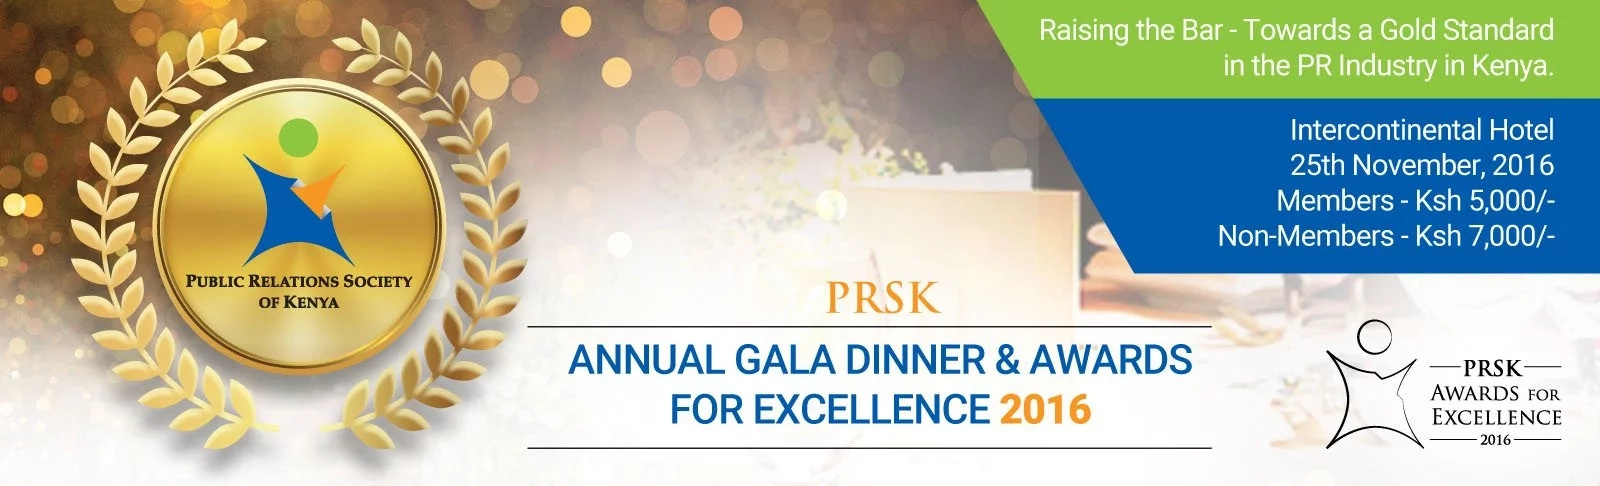 The PRSK awards for excellence are here again